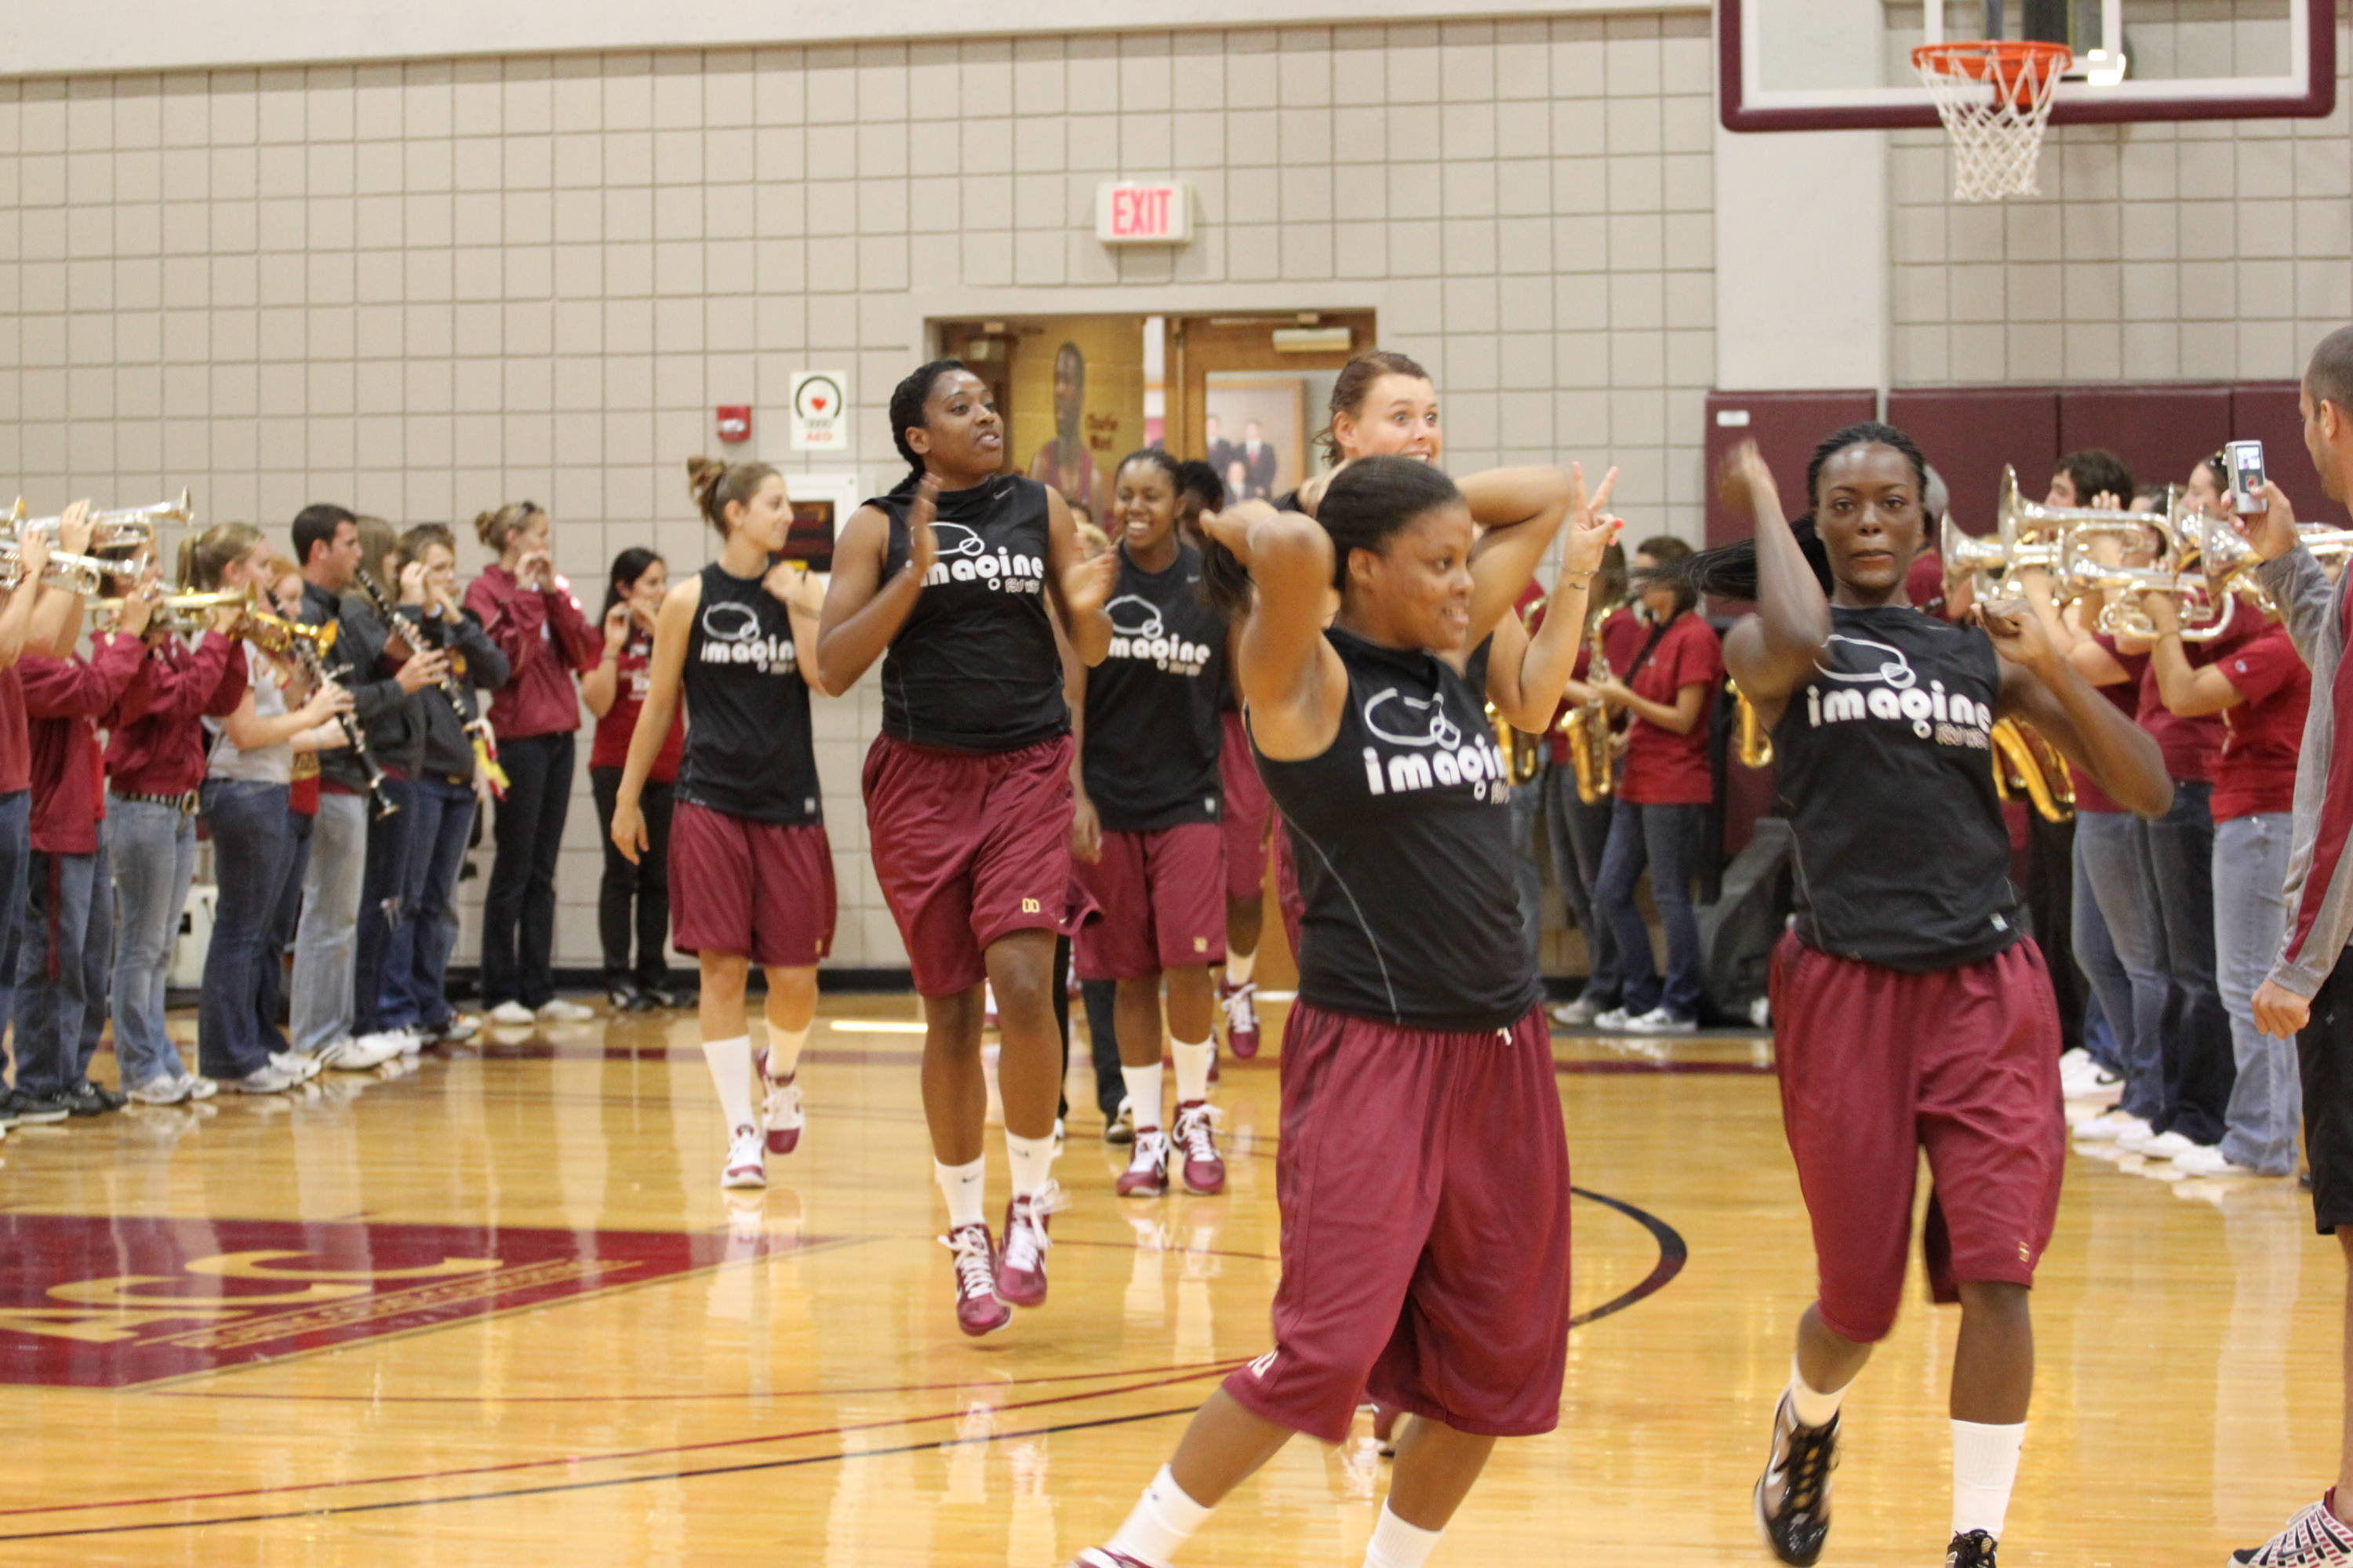 The players and coaches were greeted on the practice courts by Seminole Sound.